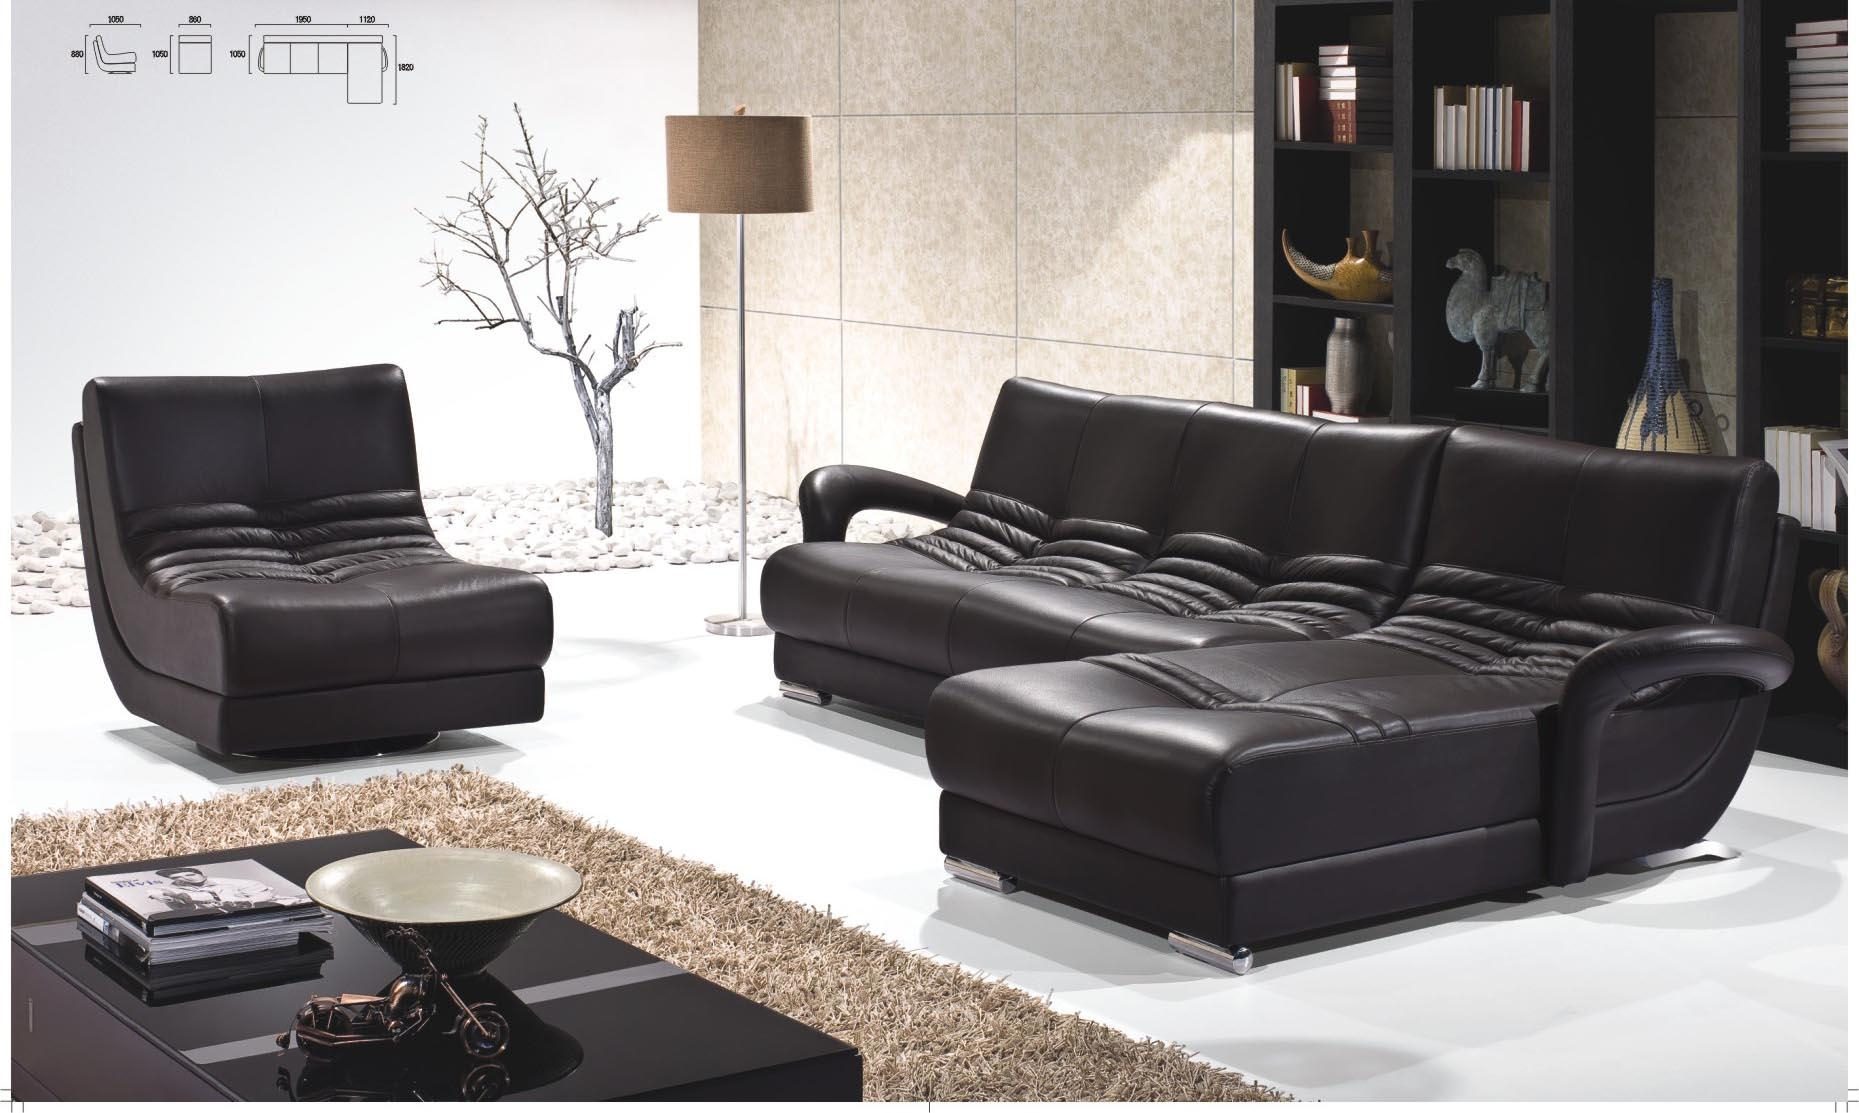 Remarkable Black Leather Living Room Set Ideas – Modern Leather With Contemporary Black Leather Sofas (Image 16 of 20)